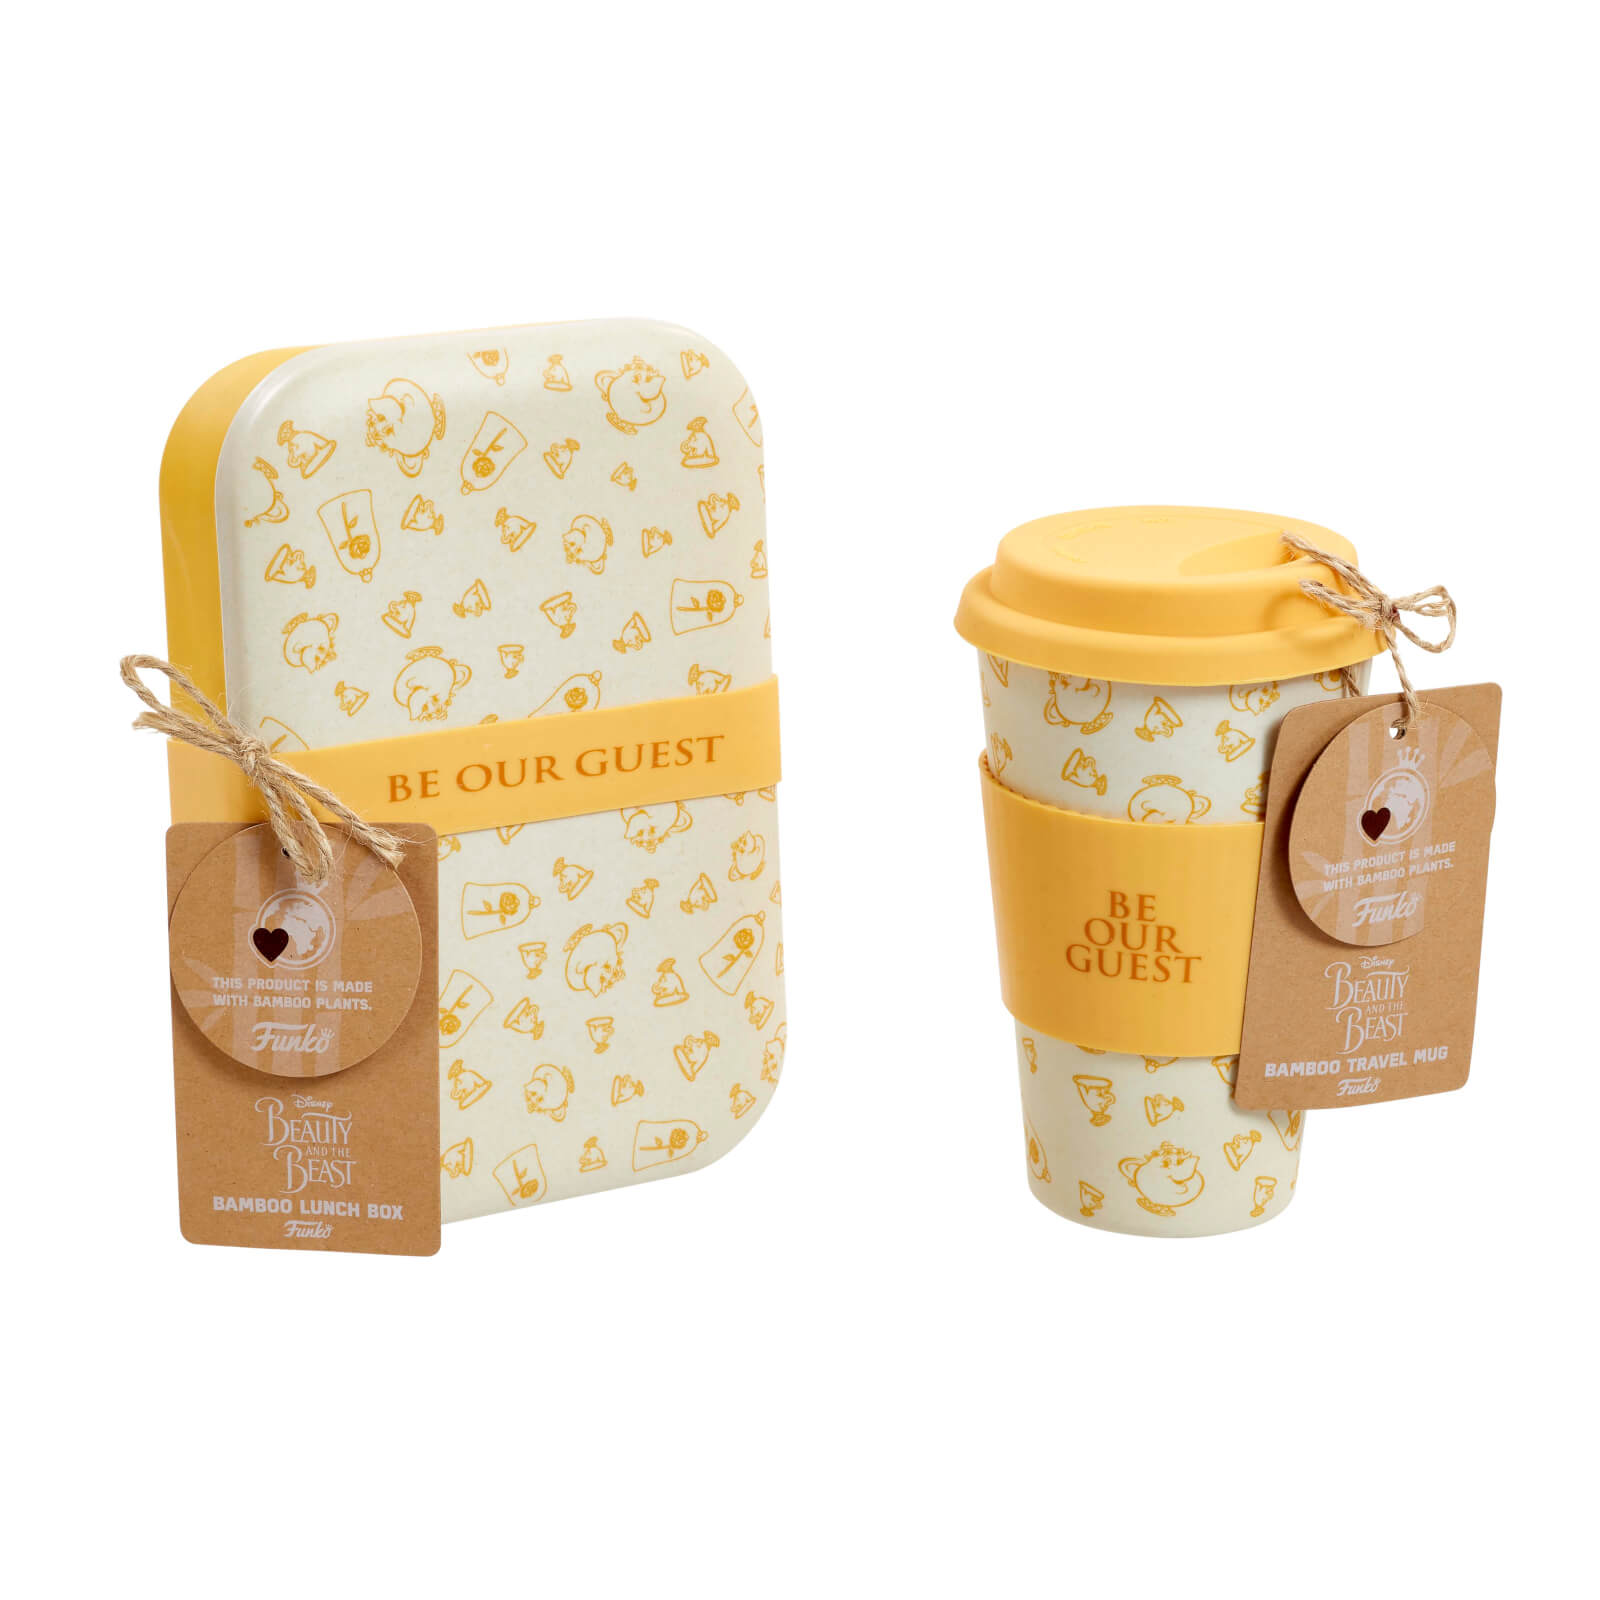 Image of Funko Homeware Disney Be Our Guest Bamboo Lunch Box & Mug Set